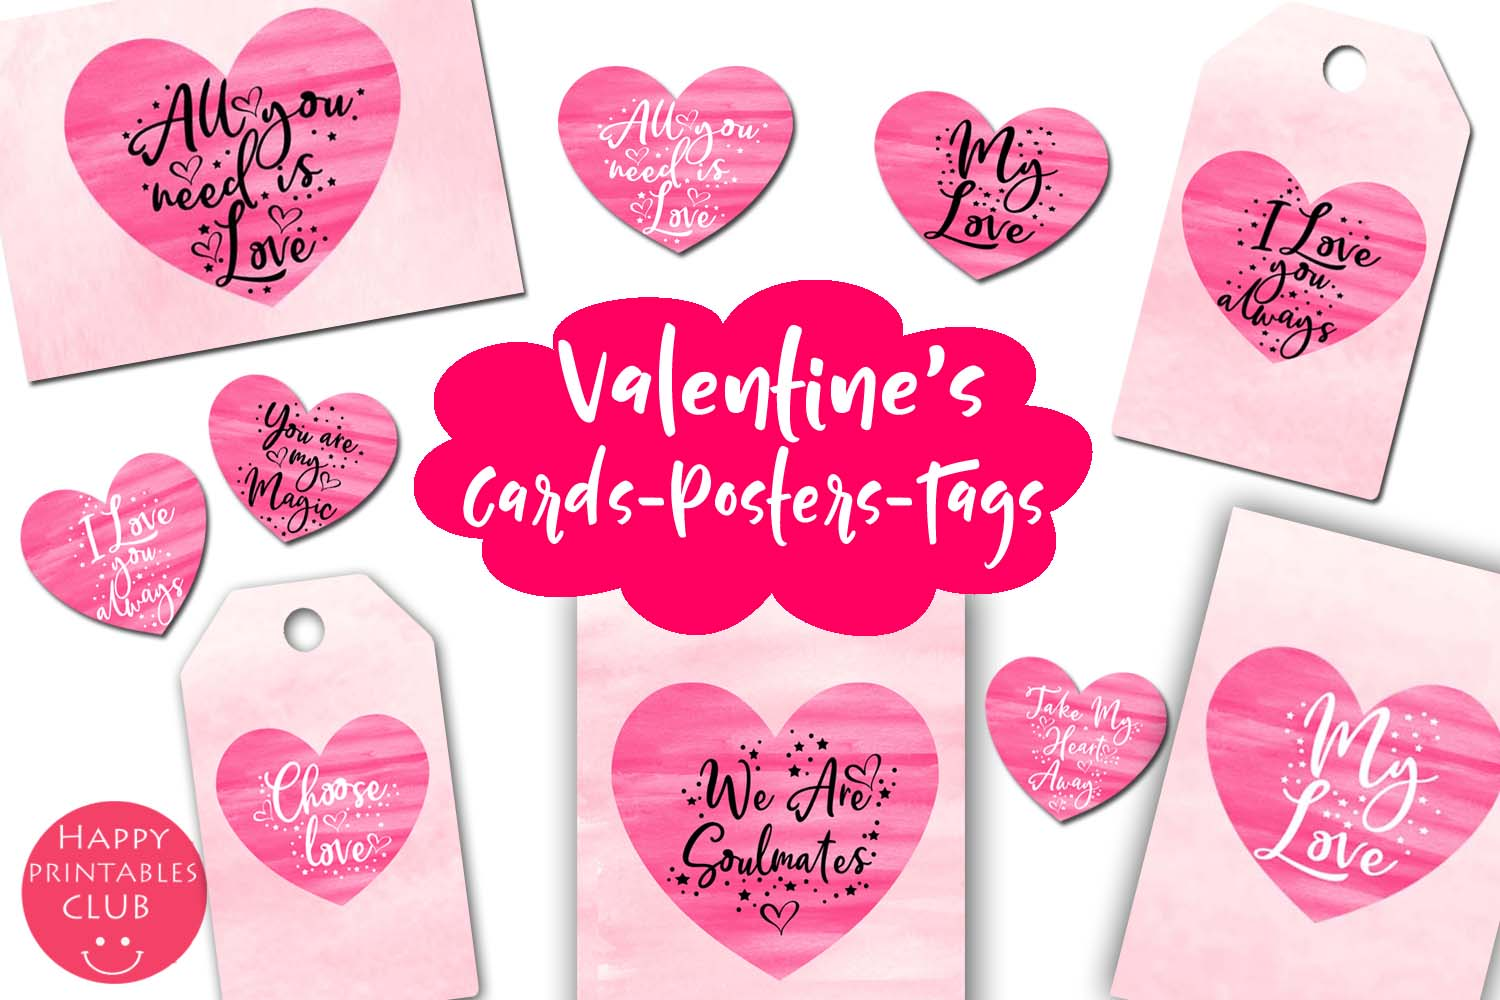 Valentines Day Cards-Posters-Tags-Heart Overlay Cliparts example image 1